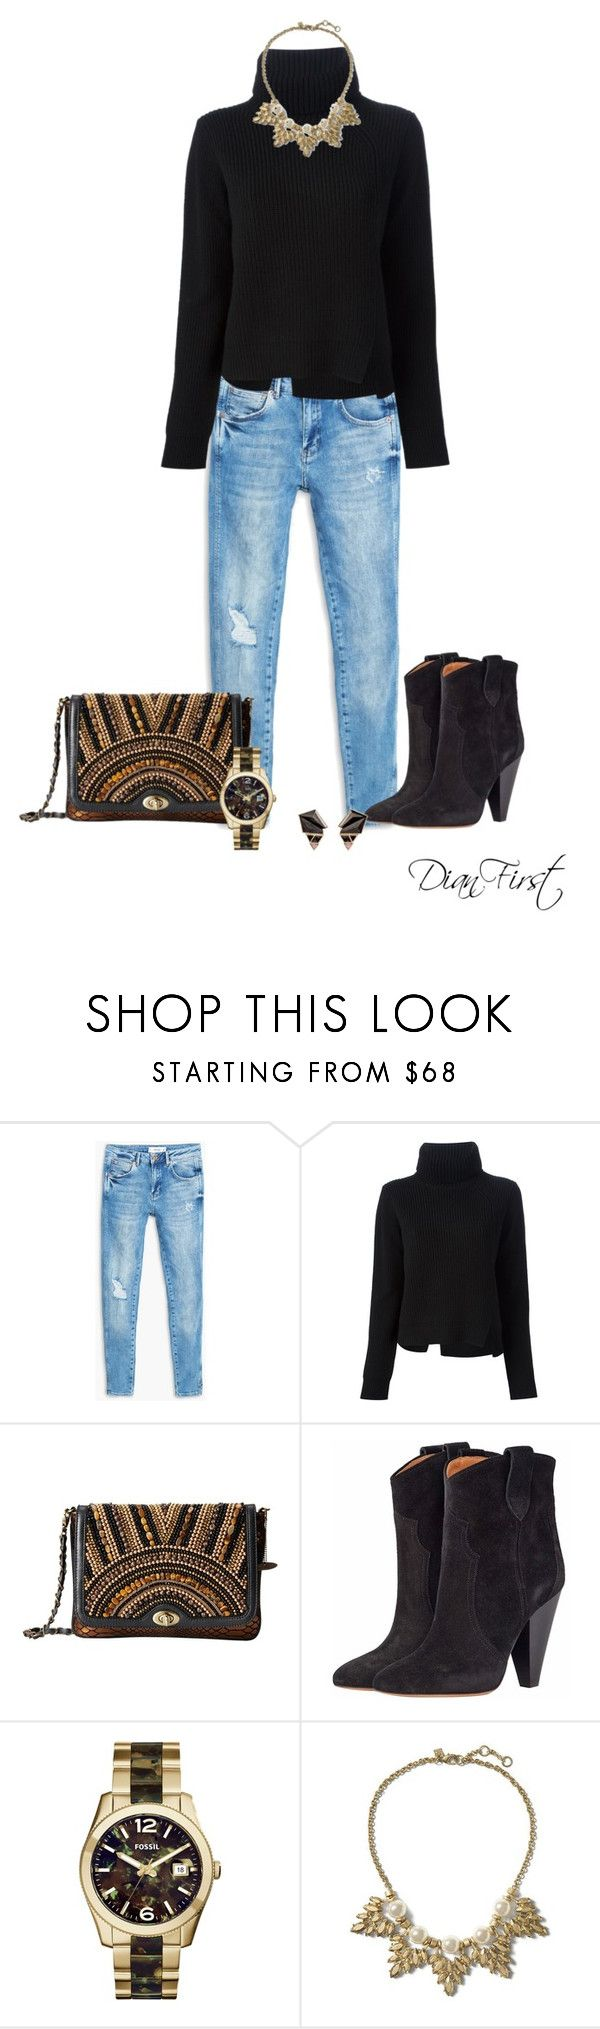 """""""Falling for Black Sweater"""" by dianfirst ❤ liked on Polyvore featuring MANGO, Proenza Schouler, Mary Frances Accessories, Isabel Marant, FOSSIL, Banana Republic and Nak Armstrong"""